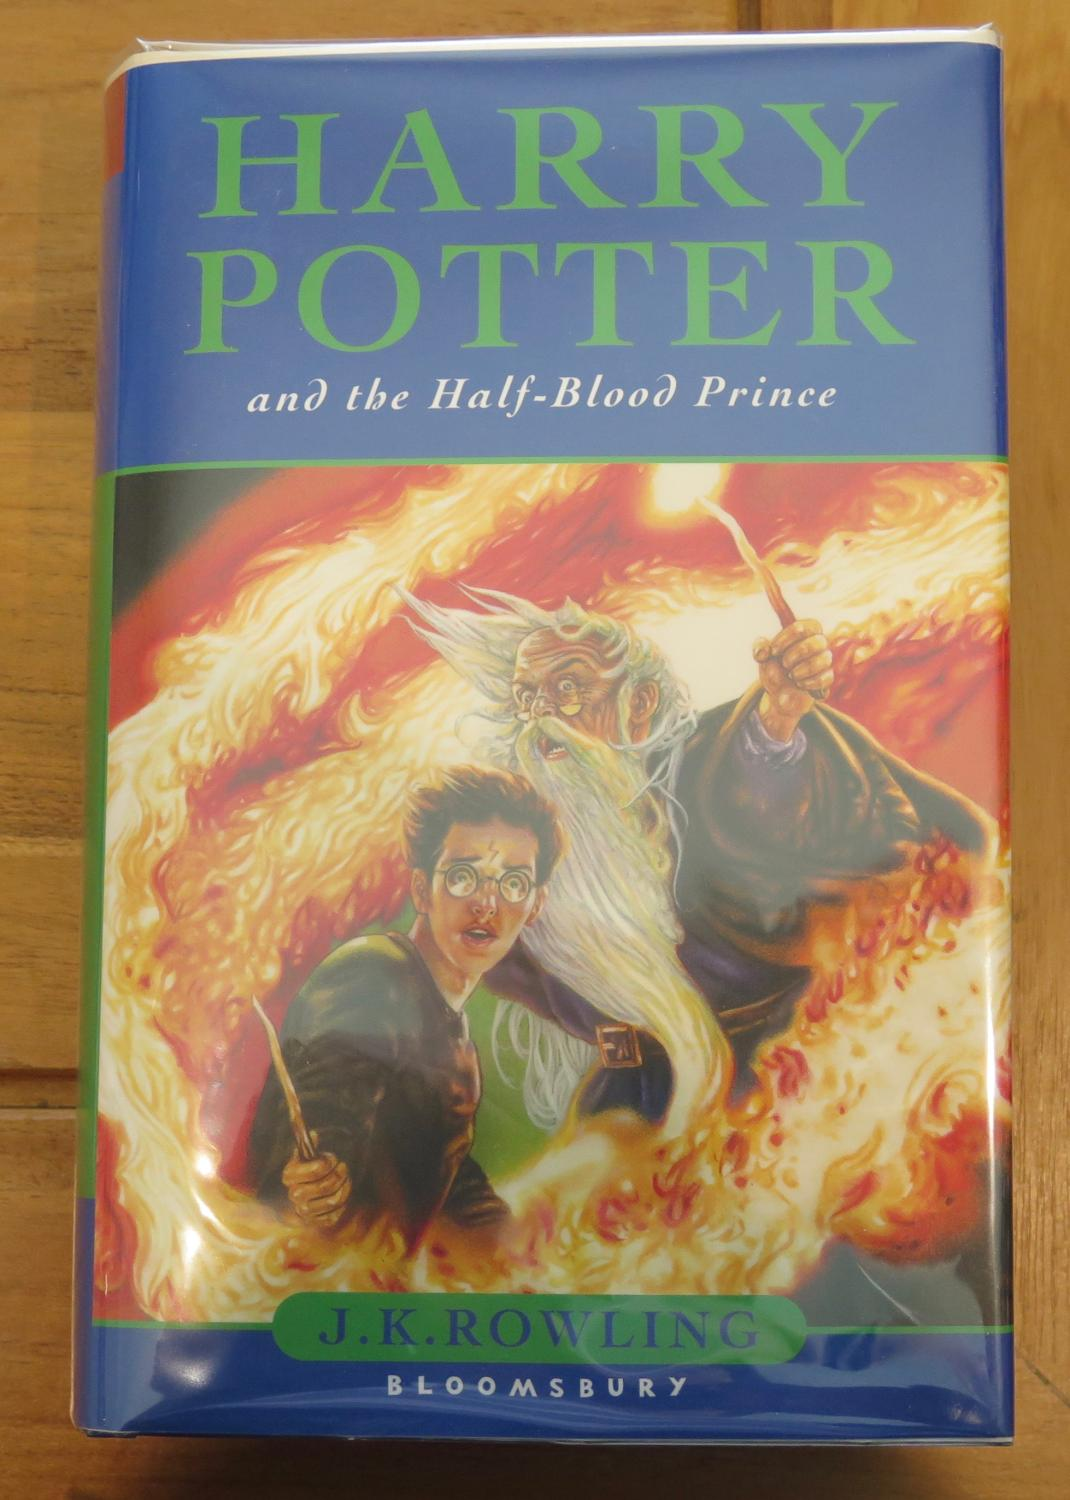 Harry Potter Book Kickass : Harry potter and the half blood prince children s edition